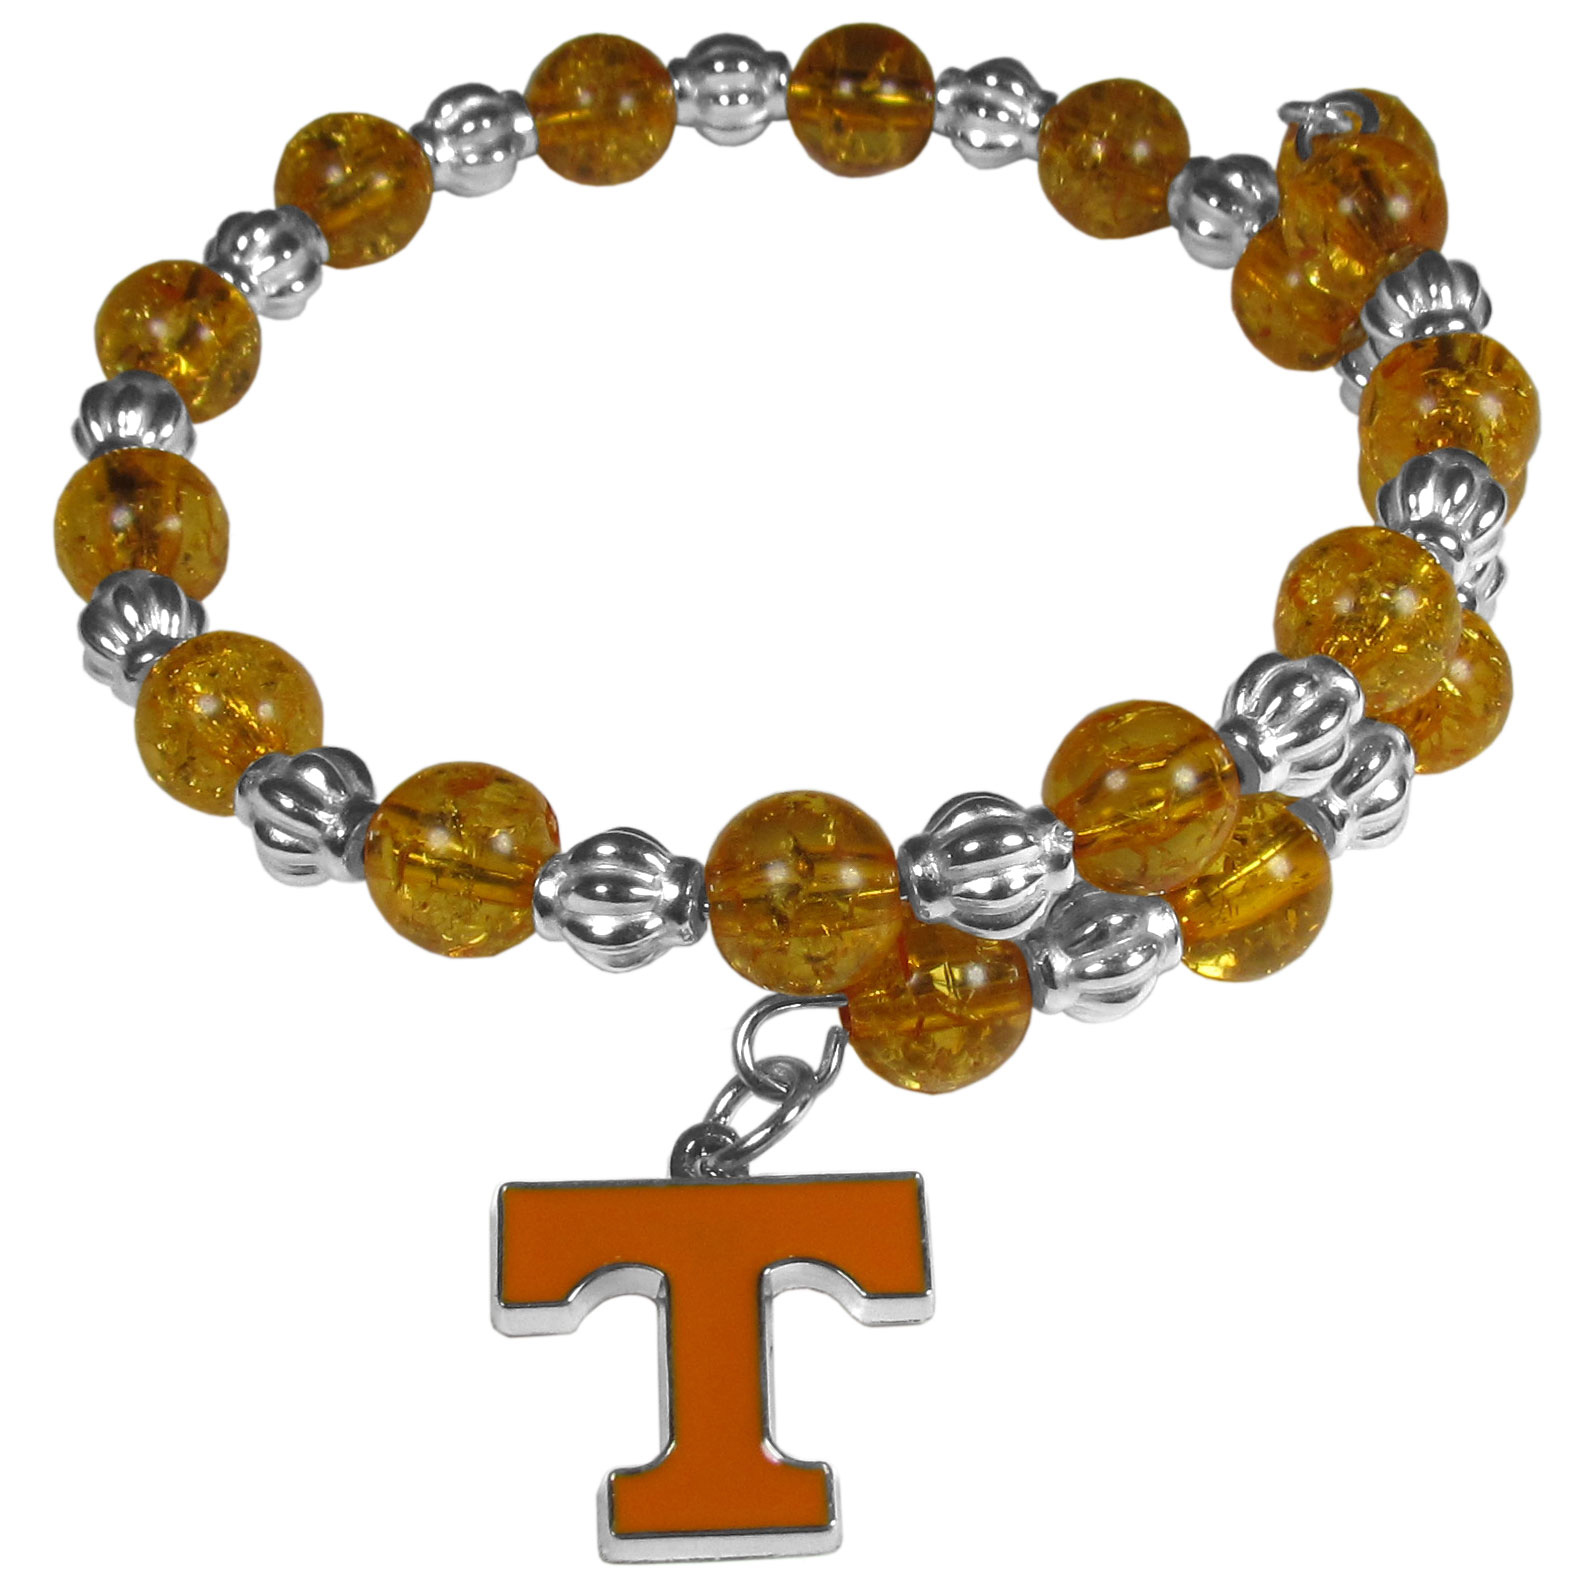 Tennessee Volunteers Bead Memory Wire Bracelet - Our Tennessee Volunteers memory wire bead bracelet is trendy way to show off your love of the game. The double wrap bracelet is completely covered in 7.5 mm crystals that are broken up with silvertoned beads creating a designer look with a sporty twist. The bracelet features a fully cast, metal team charm that has expertly enameled team colors. This fashion jewelry piece is a must-have for the die-hard fan that chic look that can dress up any outfit.